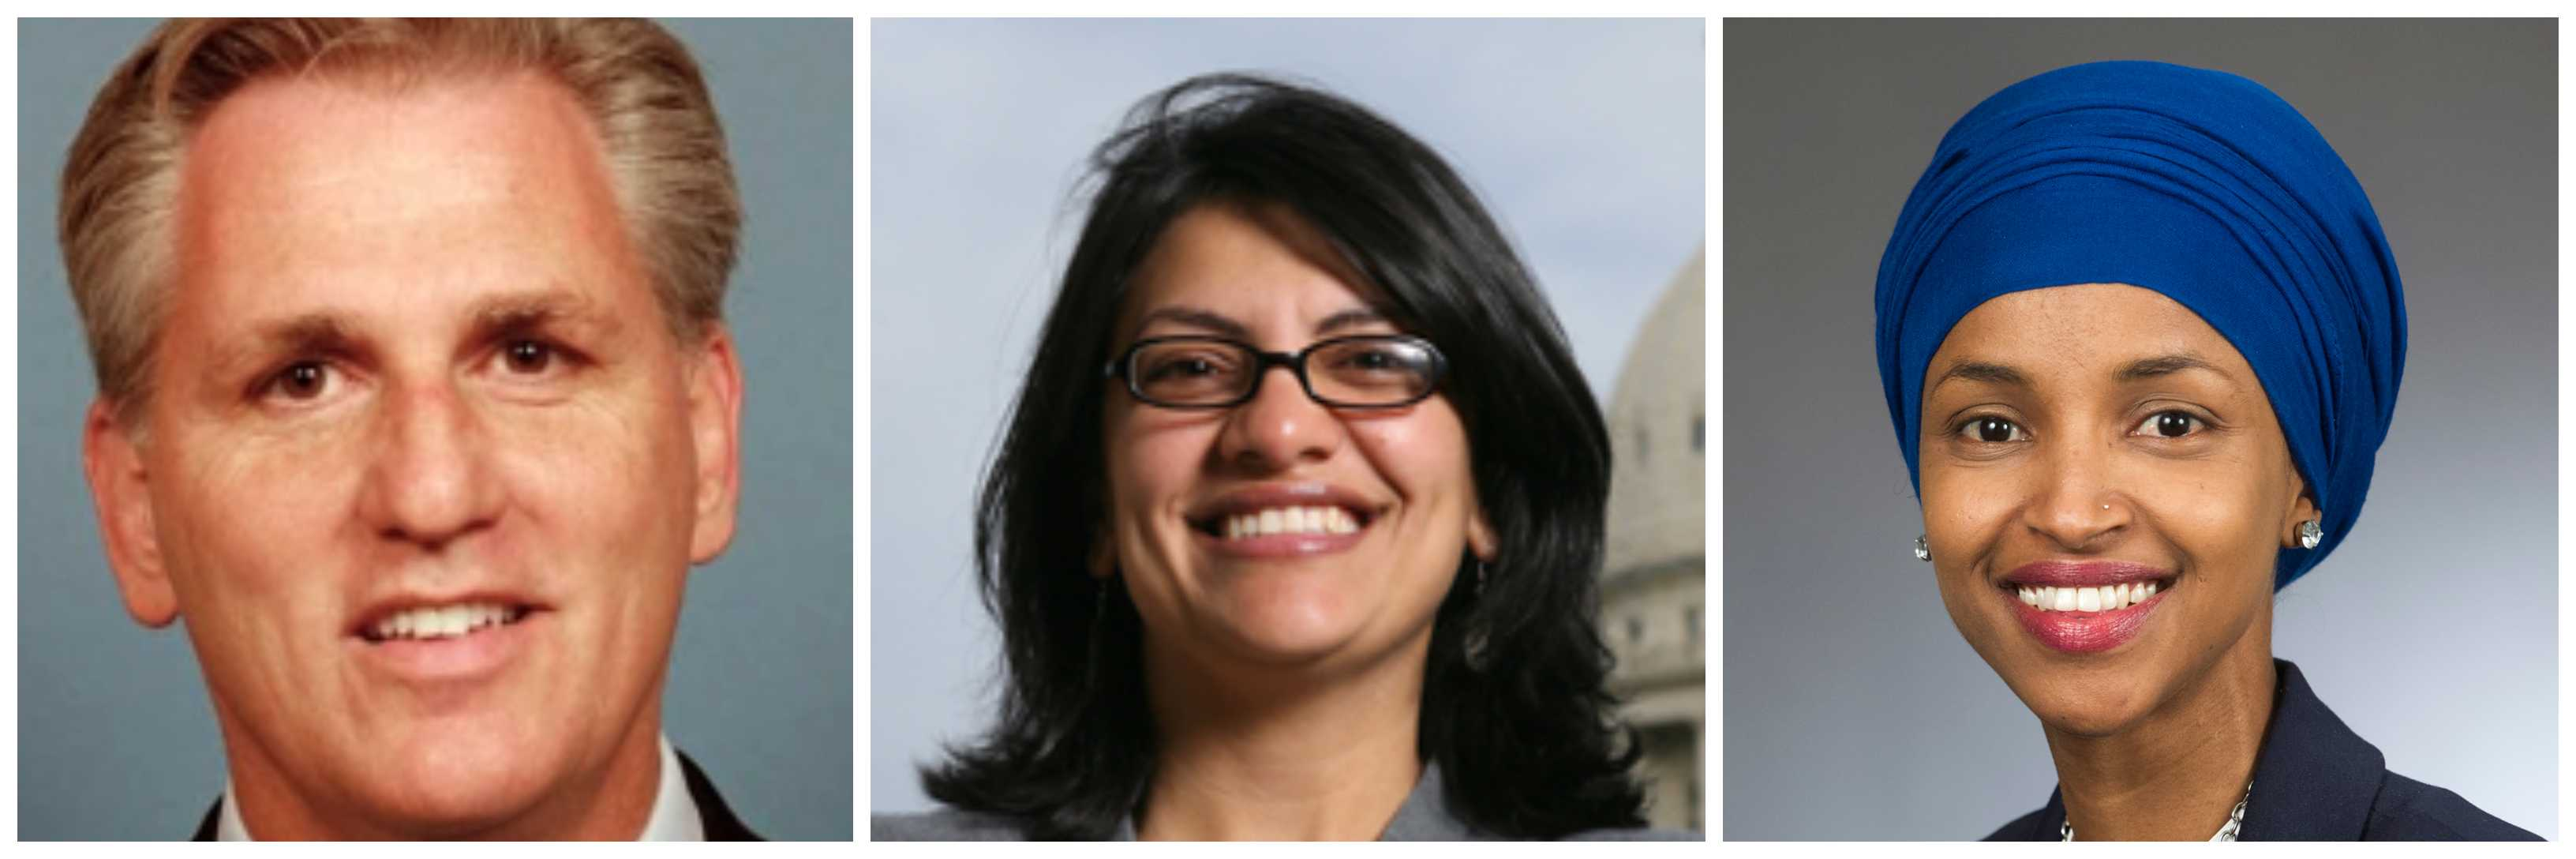 "Some American Jews have found it shocking that no action has been taken against Freshman Democrats Rashida Tlaib of Michigan and Ilhan Omar of Minnesota. The former accused American Jews of dual loyalty, an age-old canard. The latter suggested that Israel was evil and had ""hypnotized"" the world. While Democrats have been slow to condemn these expressions of antisemitism, a Republican leader in the U.S. House of Representatives has now pledged to take action, if the Democratic majority fails to do so. ""If they do not take action I think you'll see action from myself,"" said Kevin McCarthy of California. The minority leader, according to Capitol Hill reporters writing in a number of publications also said, ""This cannot sustain itself. It's unacceptable in this country."" McCarthy isn't only a man of words, you should know. He recently moved to isolate Rep. Steve King, R-Iowa, when King, long associated with white supremacists, wondered in an interview why terms like ""white supremacy"" carried a stigma. McCarthy has suggested that statements made by Tlaib and Ilhan are worse than King's, saying not only are they equal to that offending statement, but in terms of offense, even ""more so."" It's not clear, as of yet, what actions McCarthy might take against the two women."